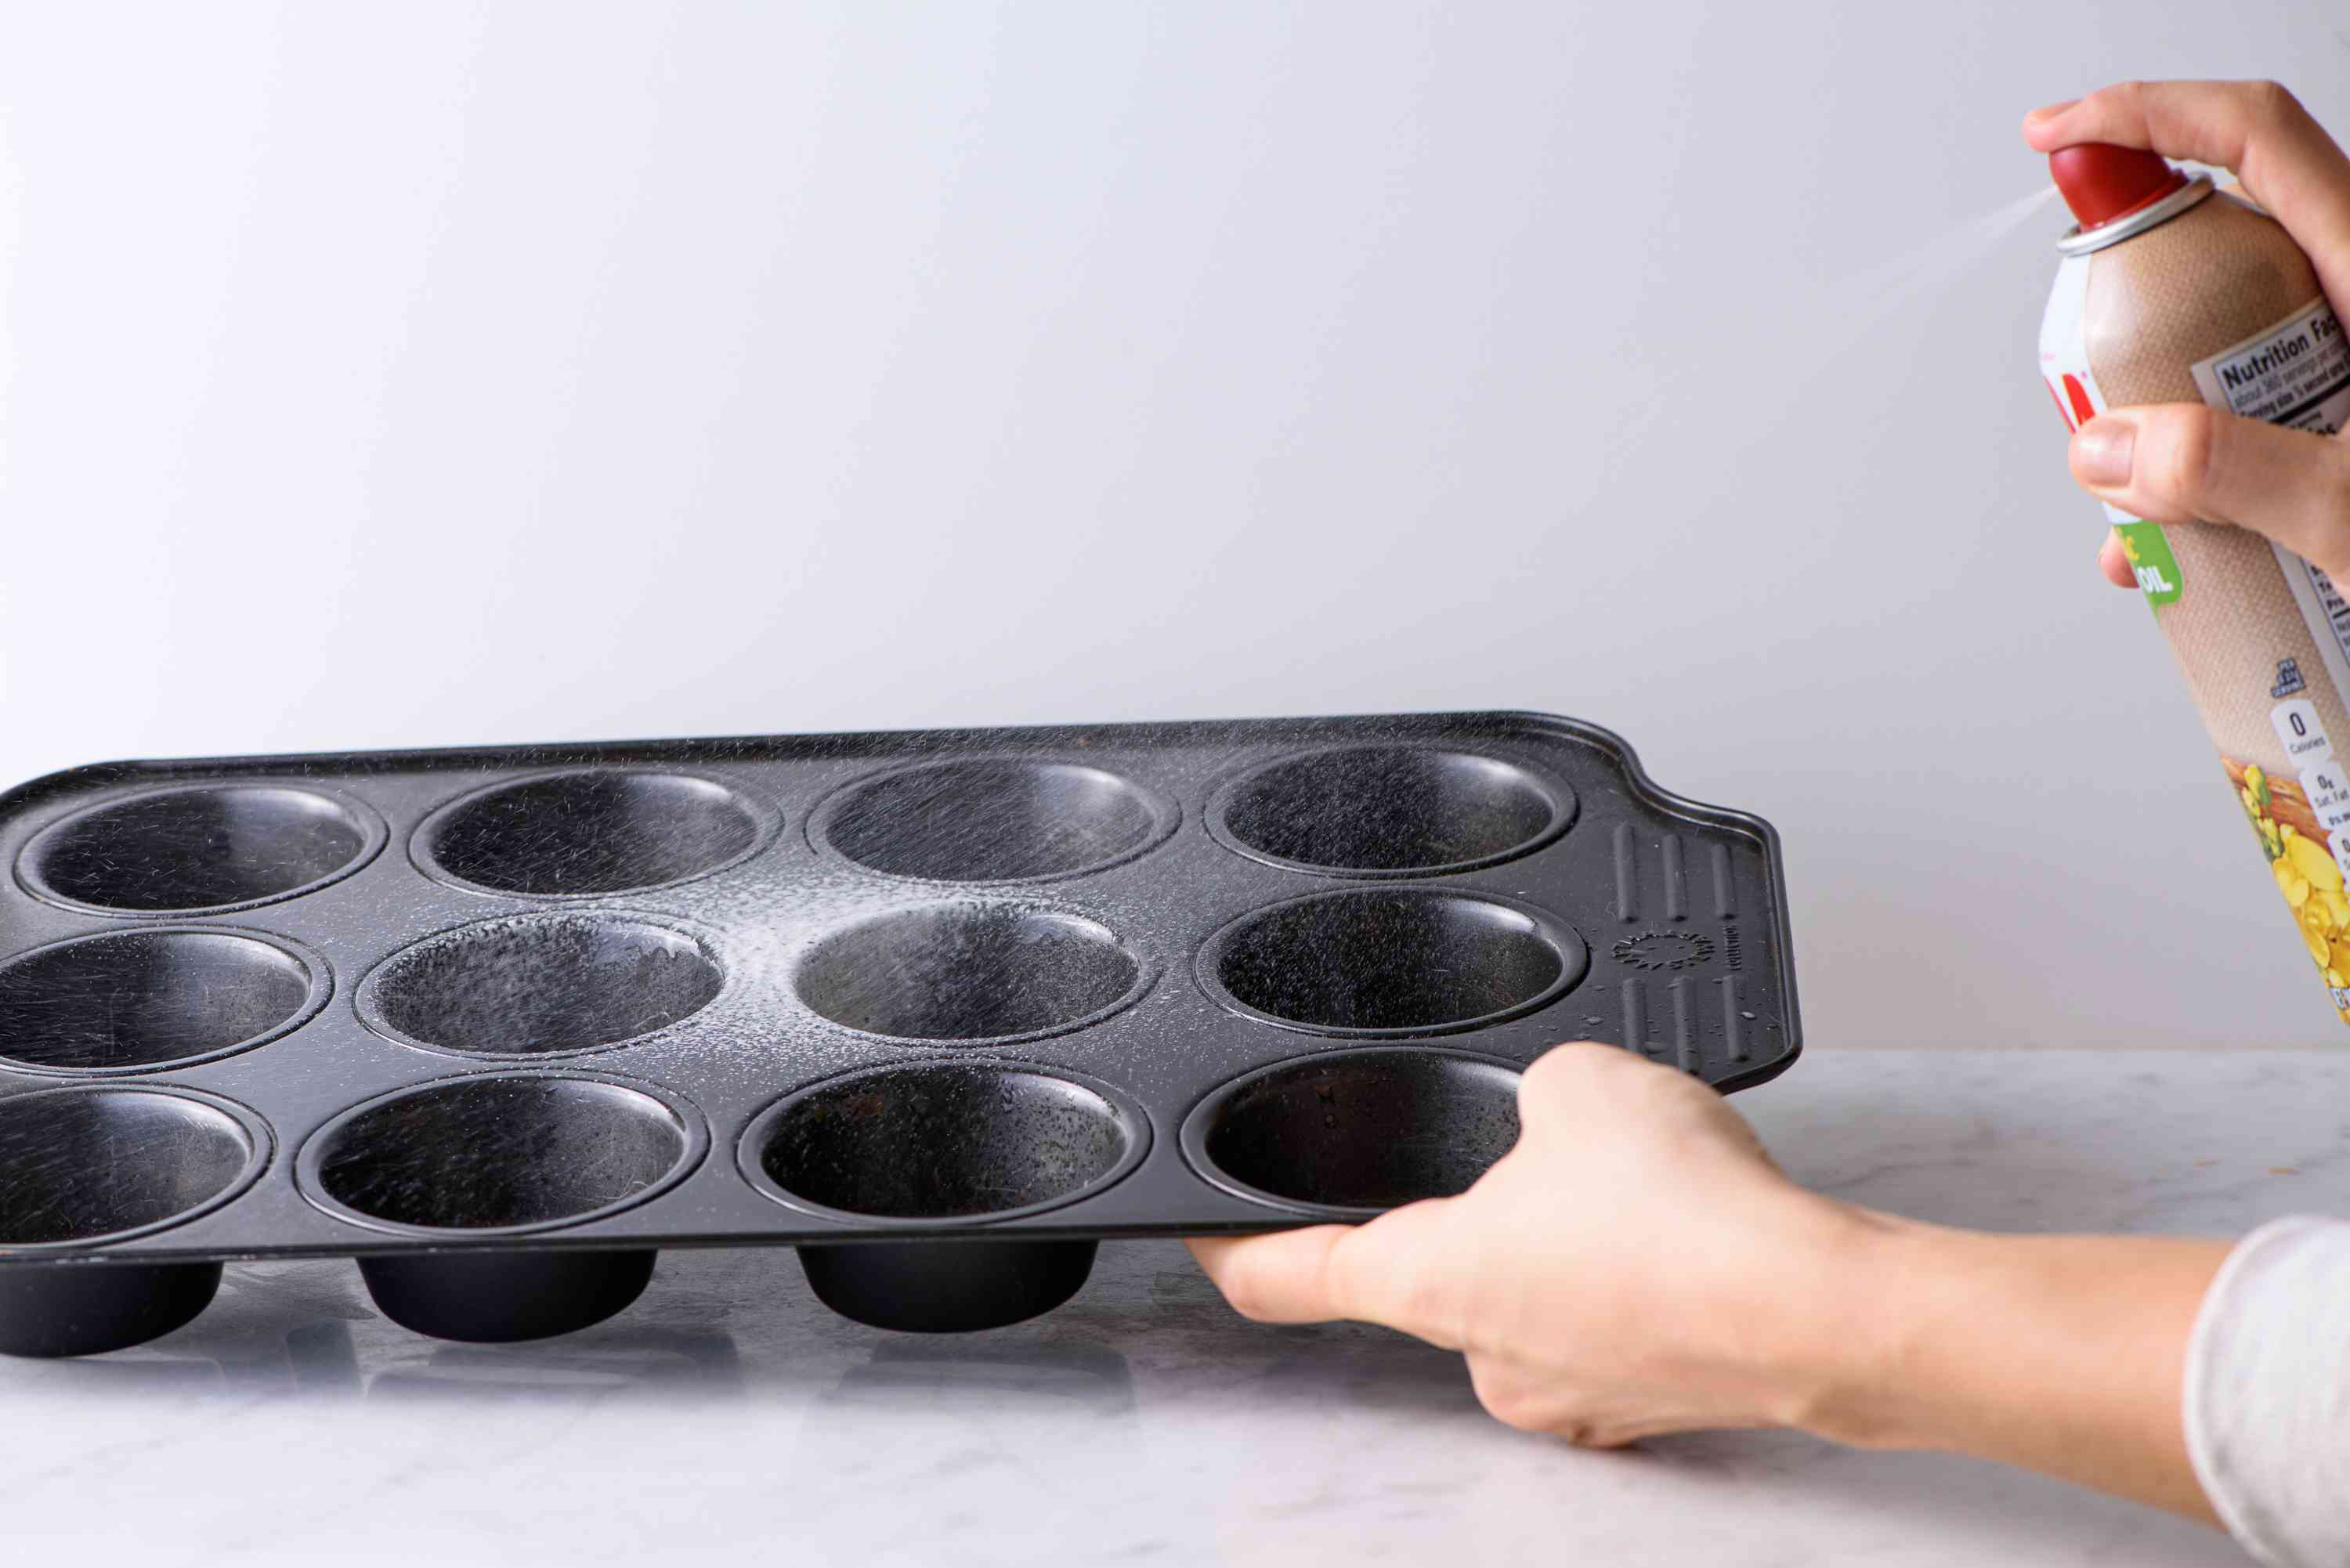 spraying cooking spray into a muffin tin